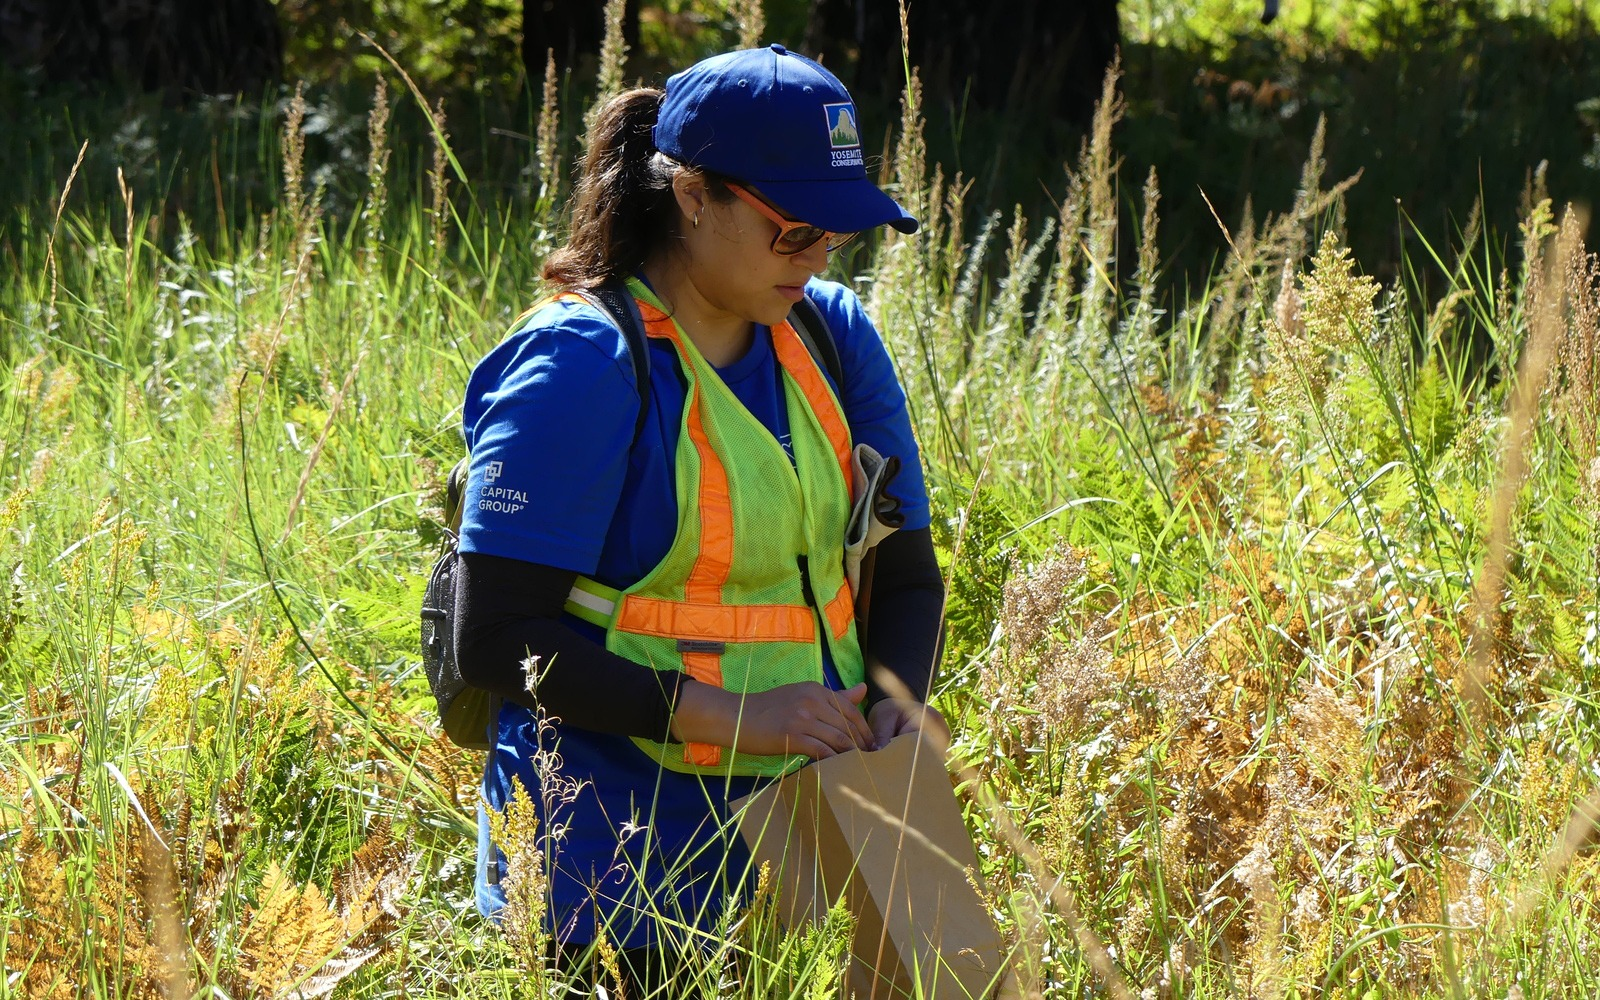 A volunteer from Capital Group collects seeds for a restoration project during one of the company's 2019 work weekends in Yosemite Valley. Photo: Steven Matros.